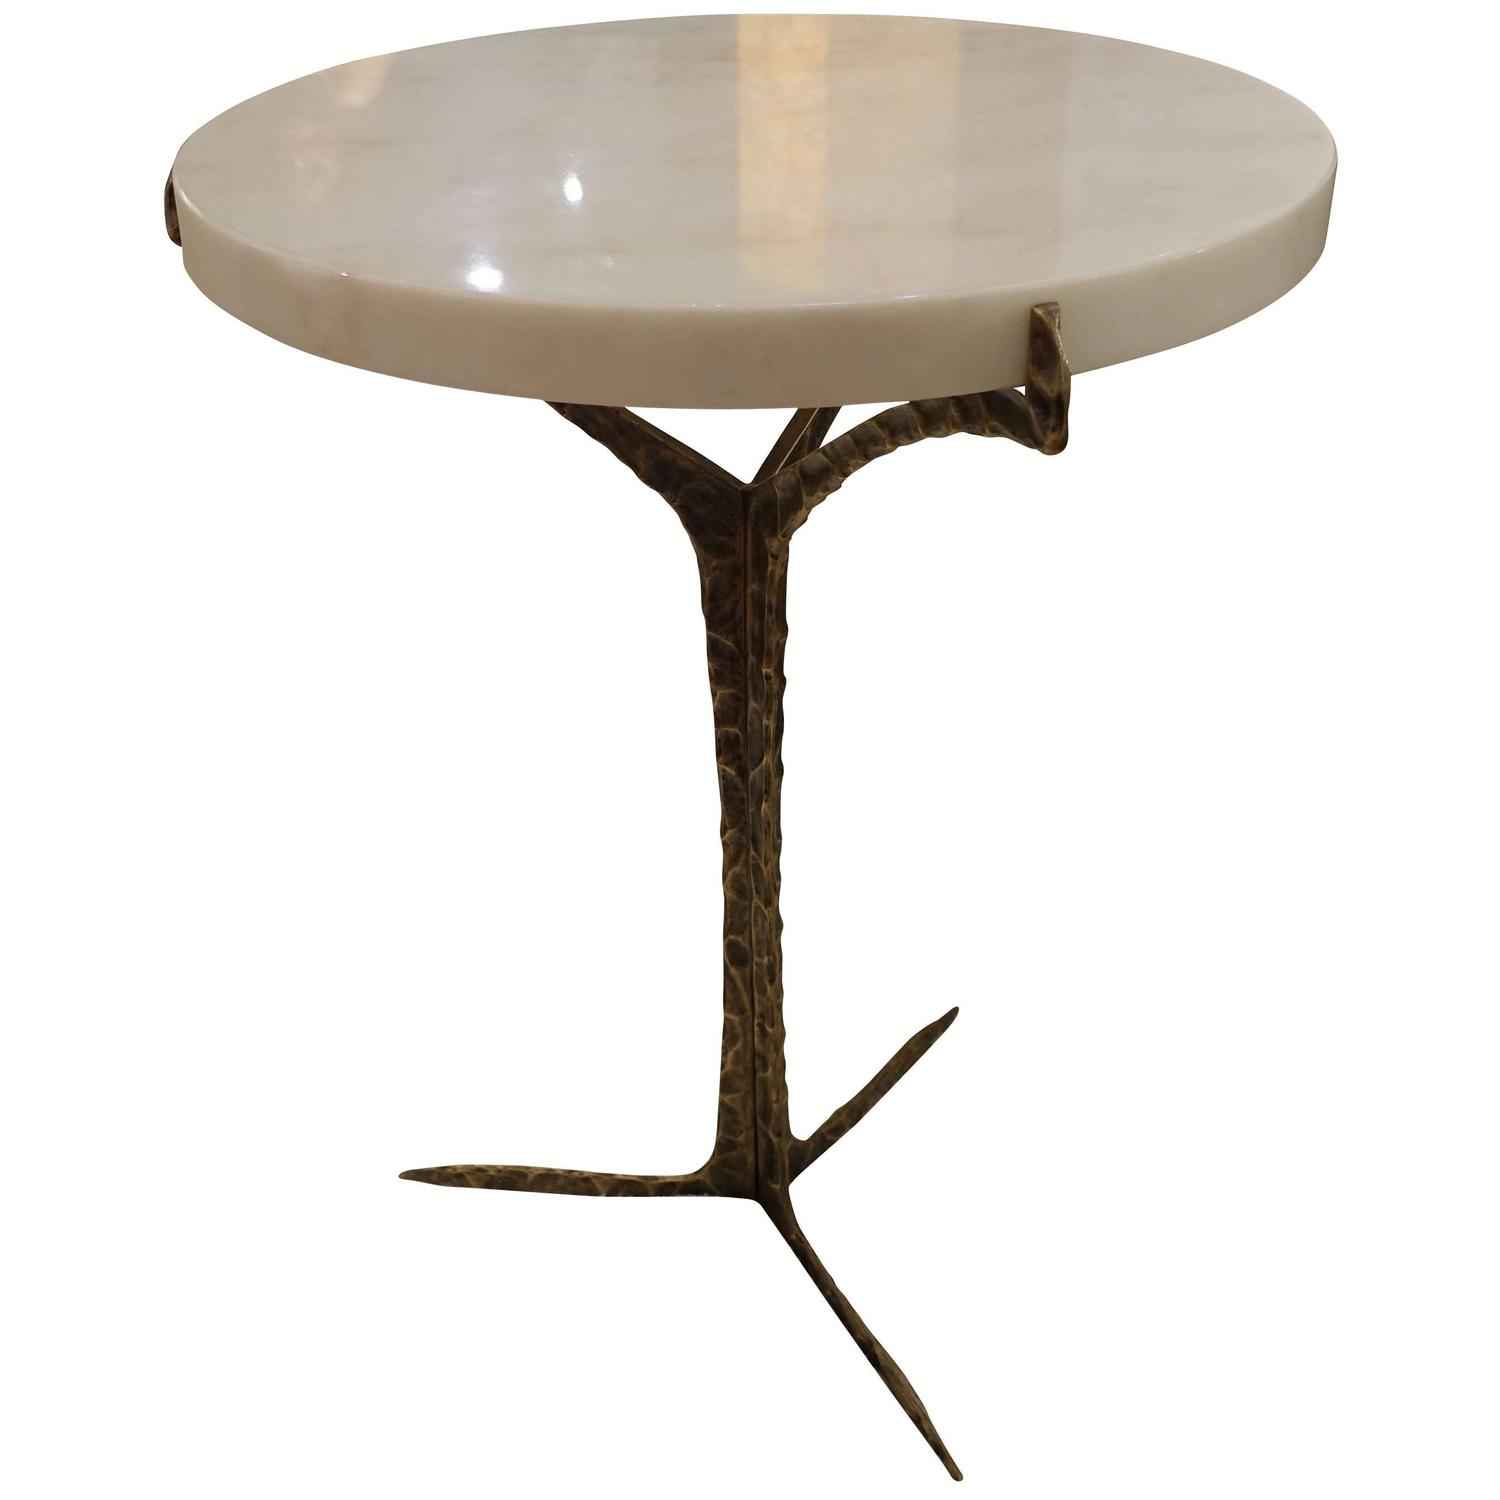 Portuguese Coffee and Cocktail Tables 19 For Sale at 1stdibs